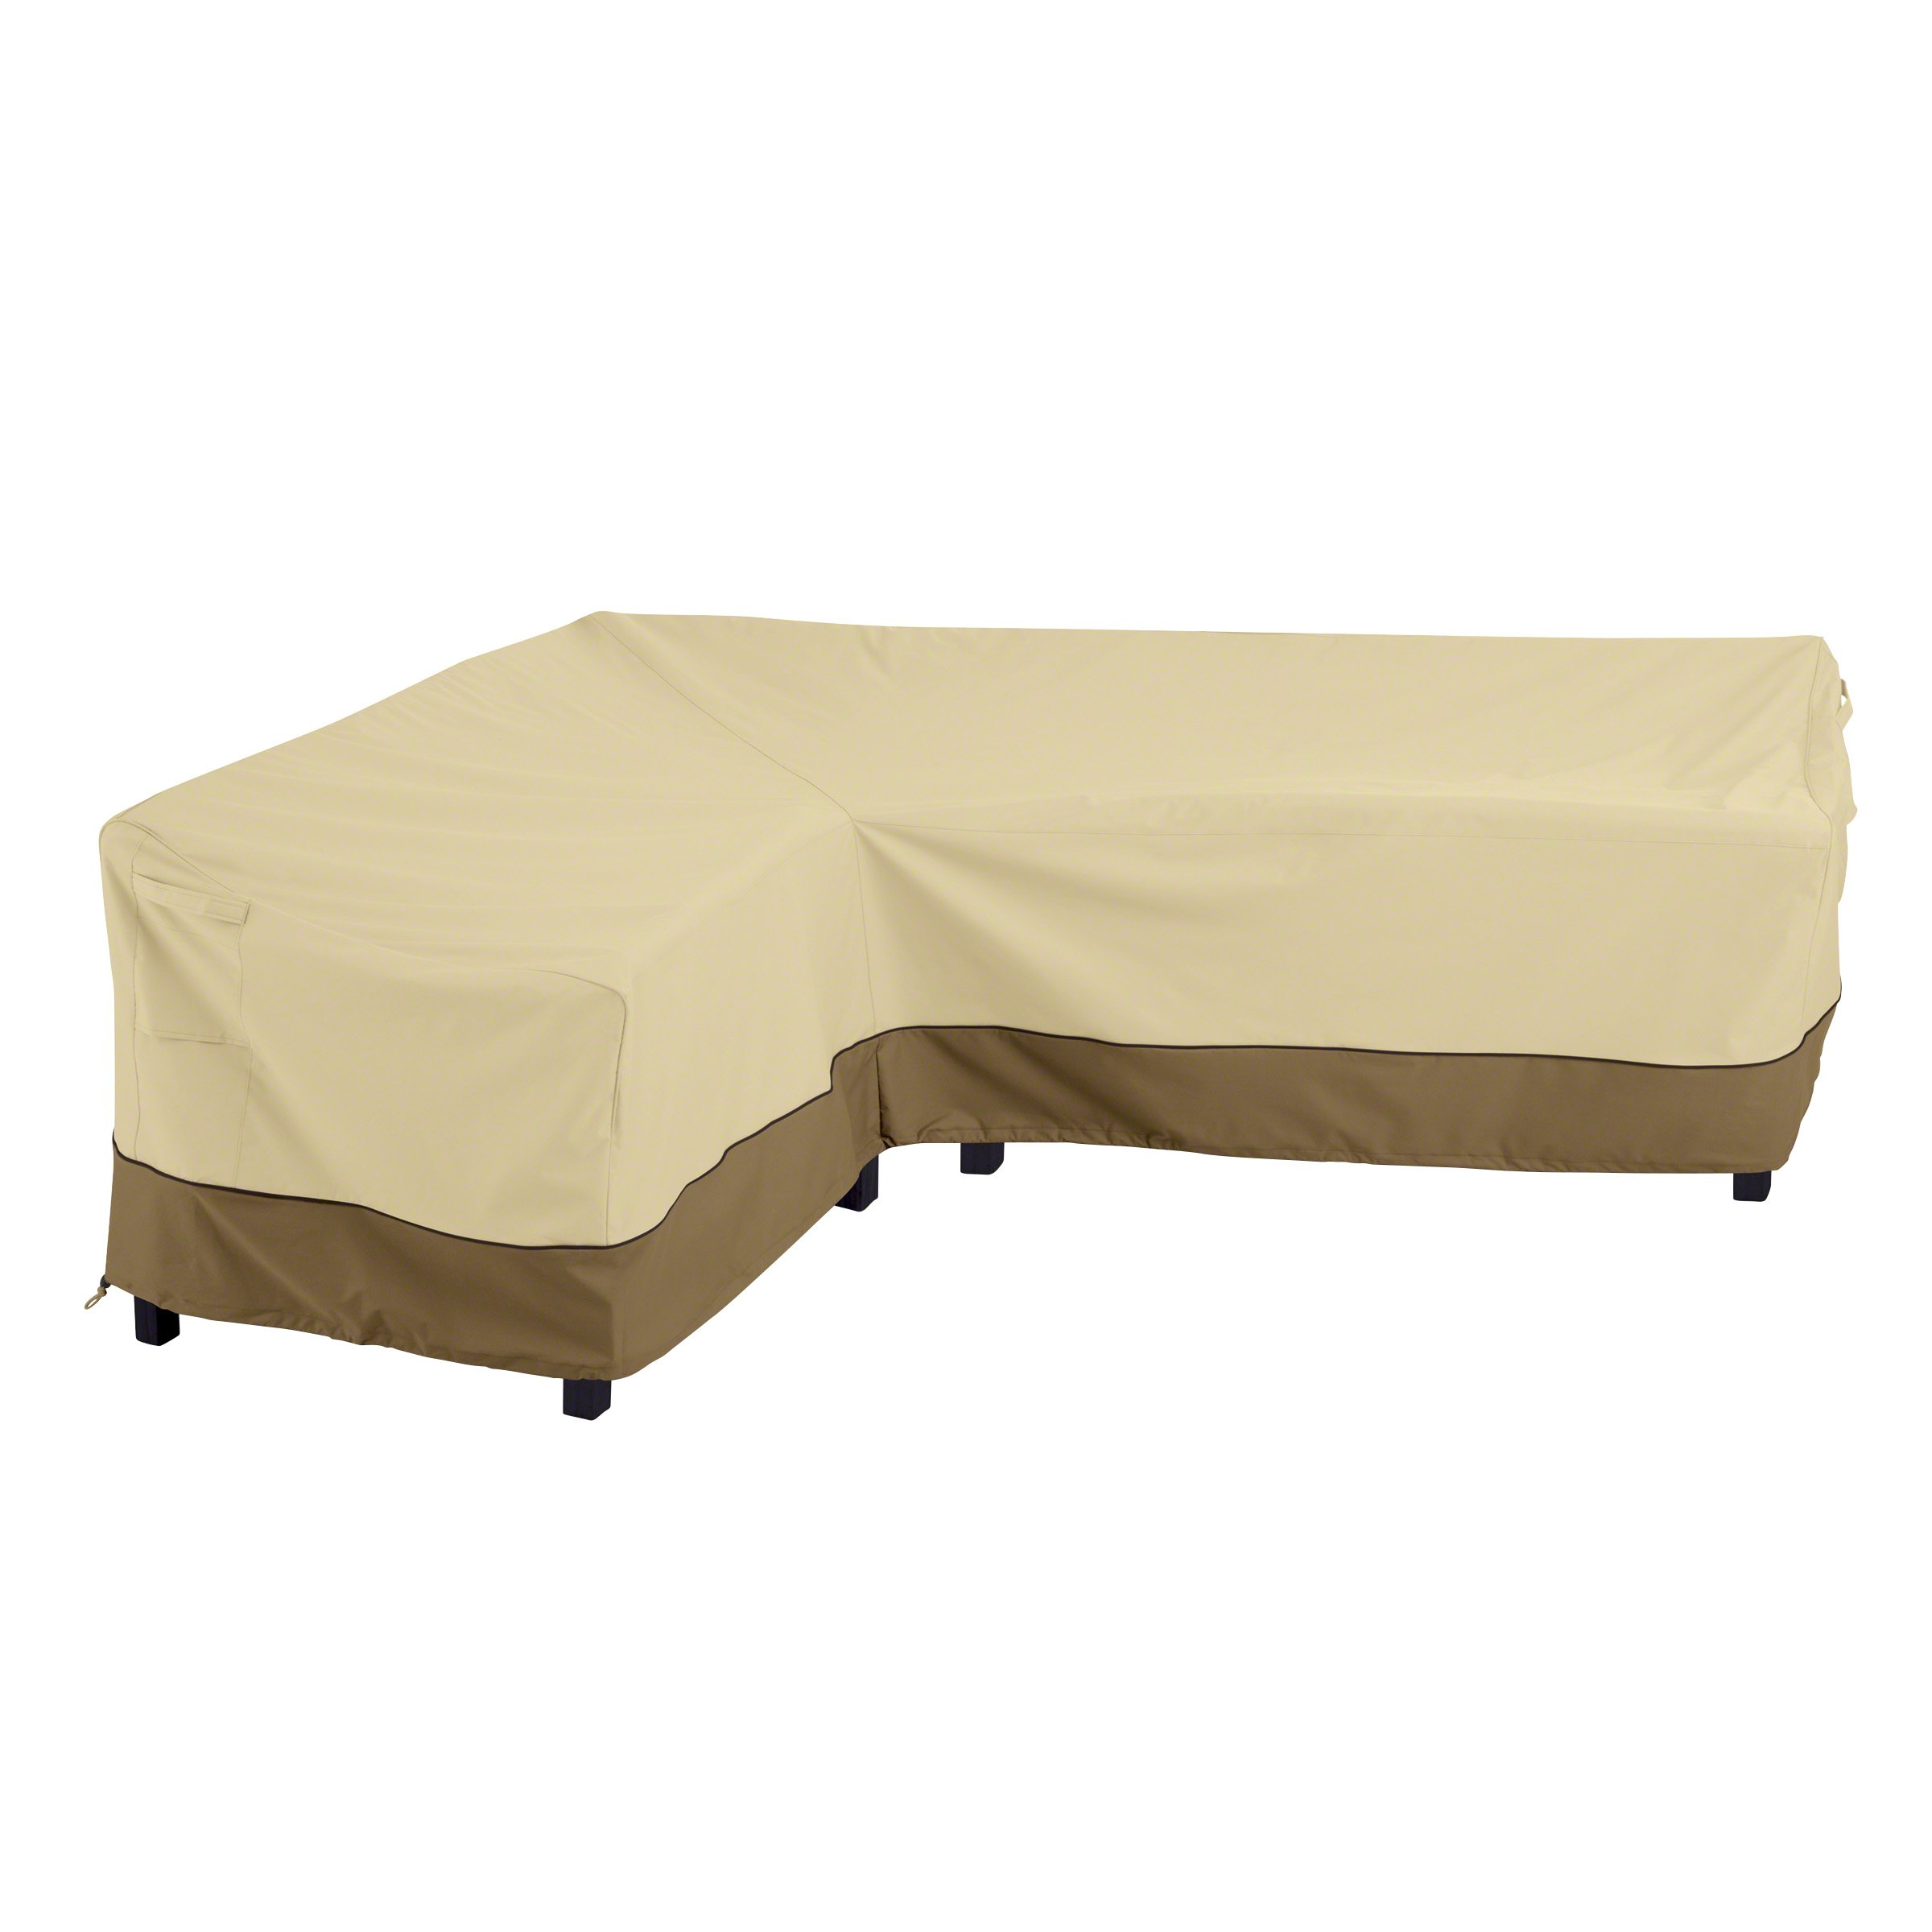 Classic Accessories Veranda L-Shaped Sectional Sofa Cover, Left Facing, Large by Classic Accessories